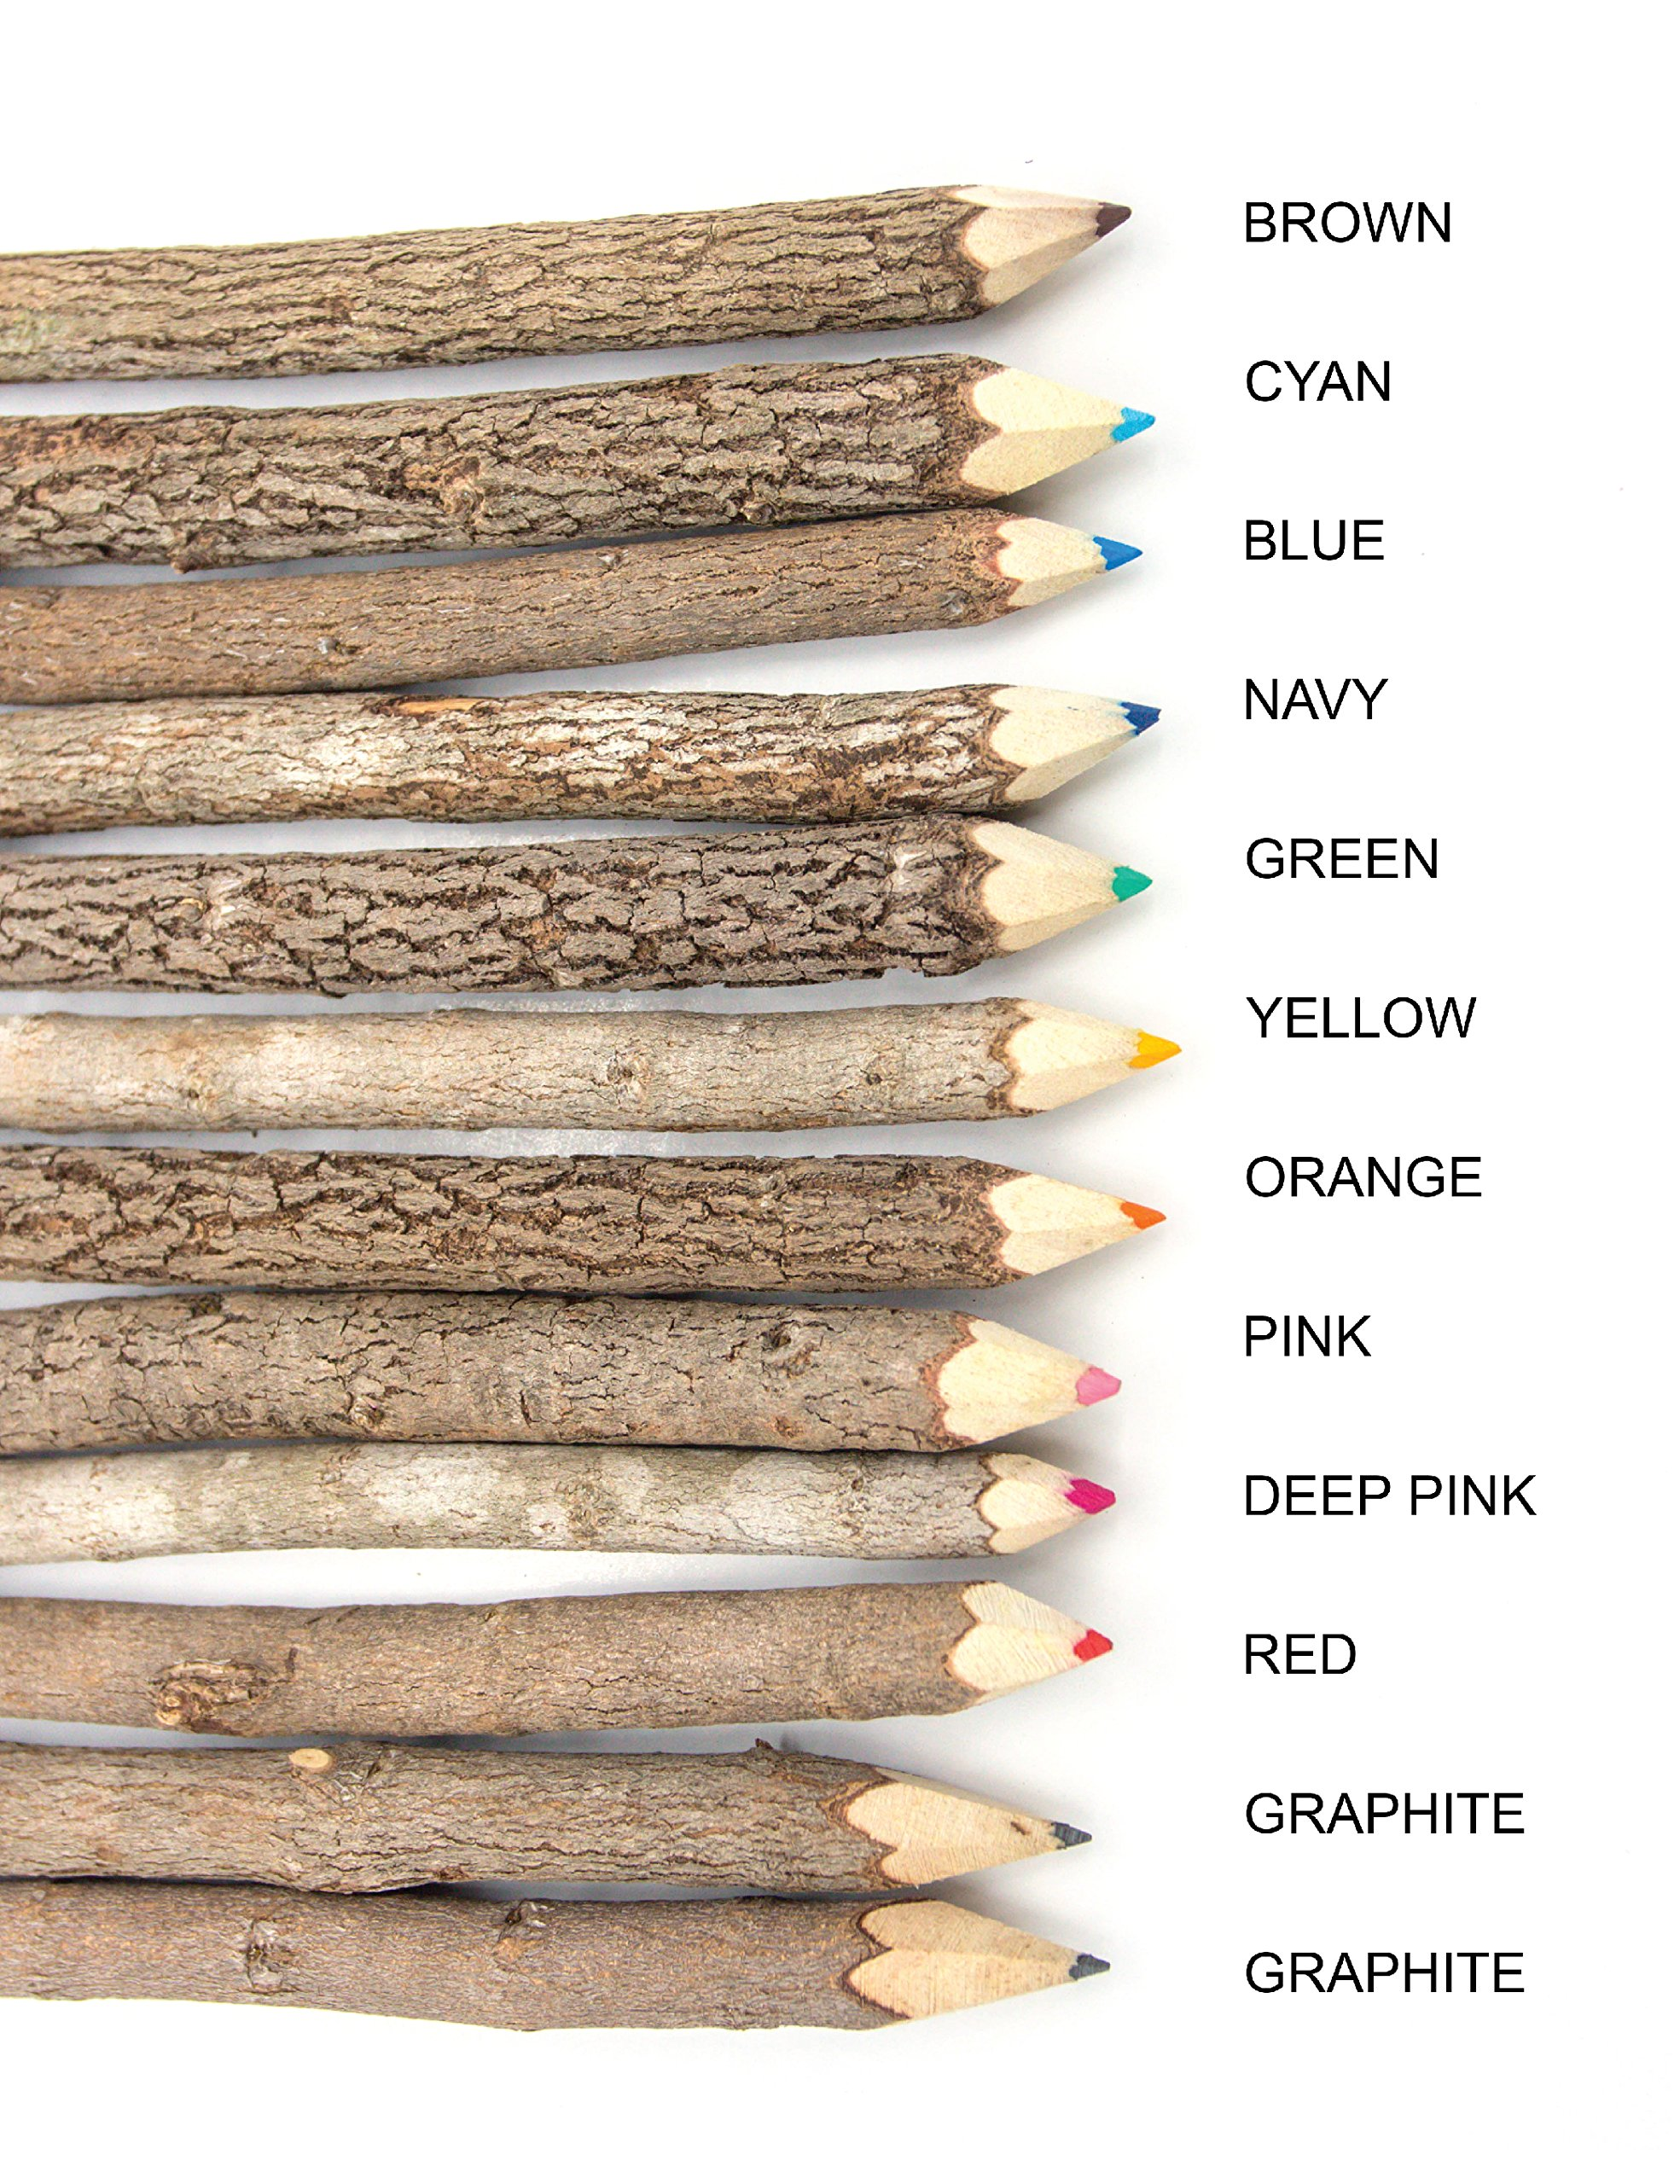 Assorted-Stick Twig Colored Outdoor Wooden Pencils Tree Child Camping Decorative Color by BSIRI (Image #3)